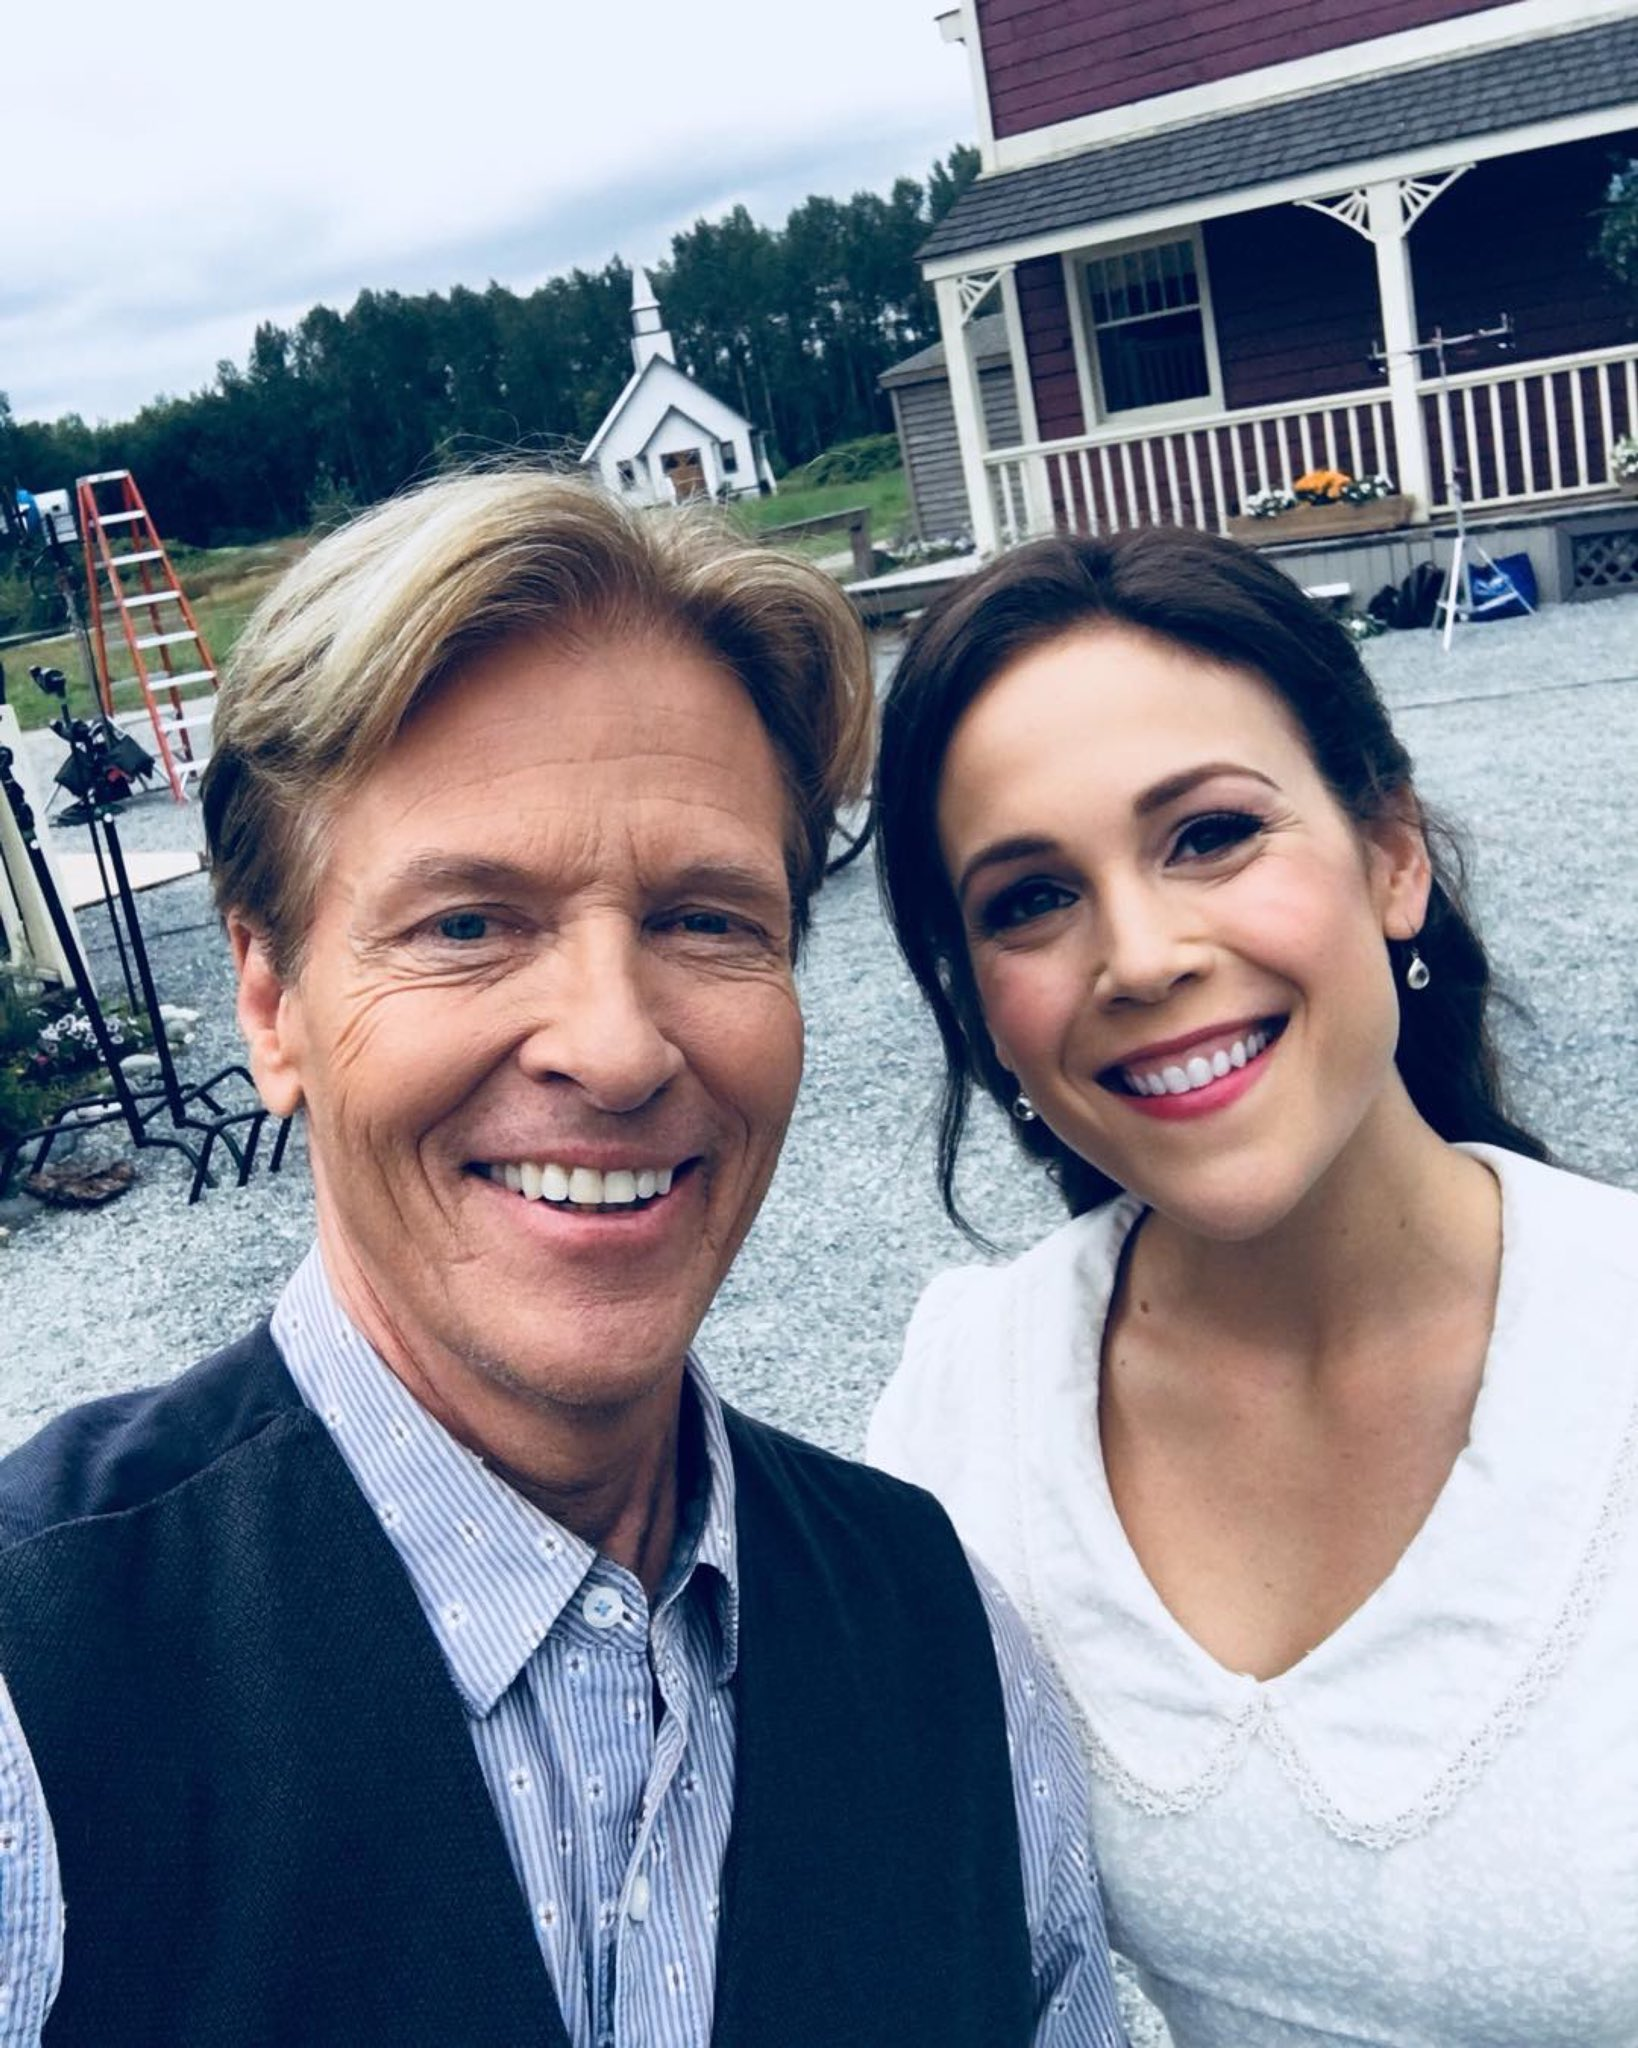 So nice working with this rock-star, golf-star, star-star! ・・・ #Repost @JackWagnerhpk https://t.co/GUdaBSTcnX